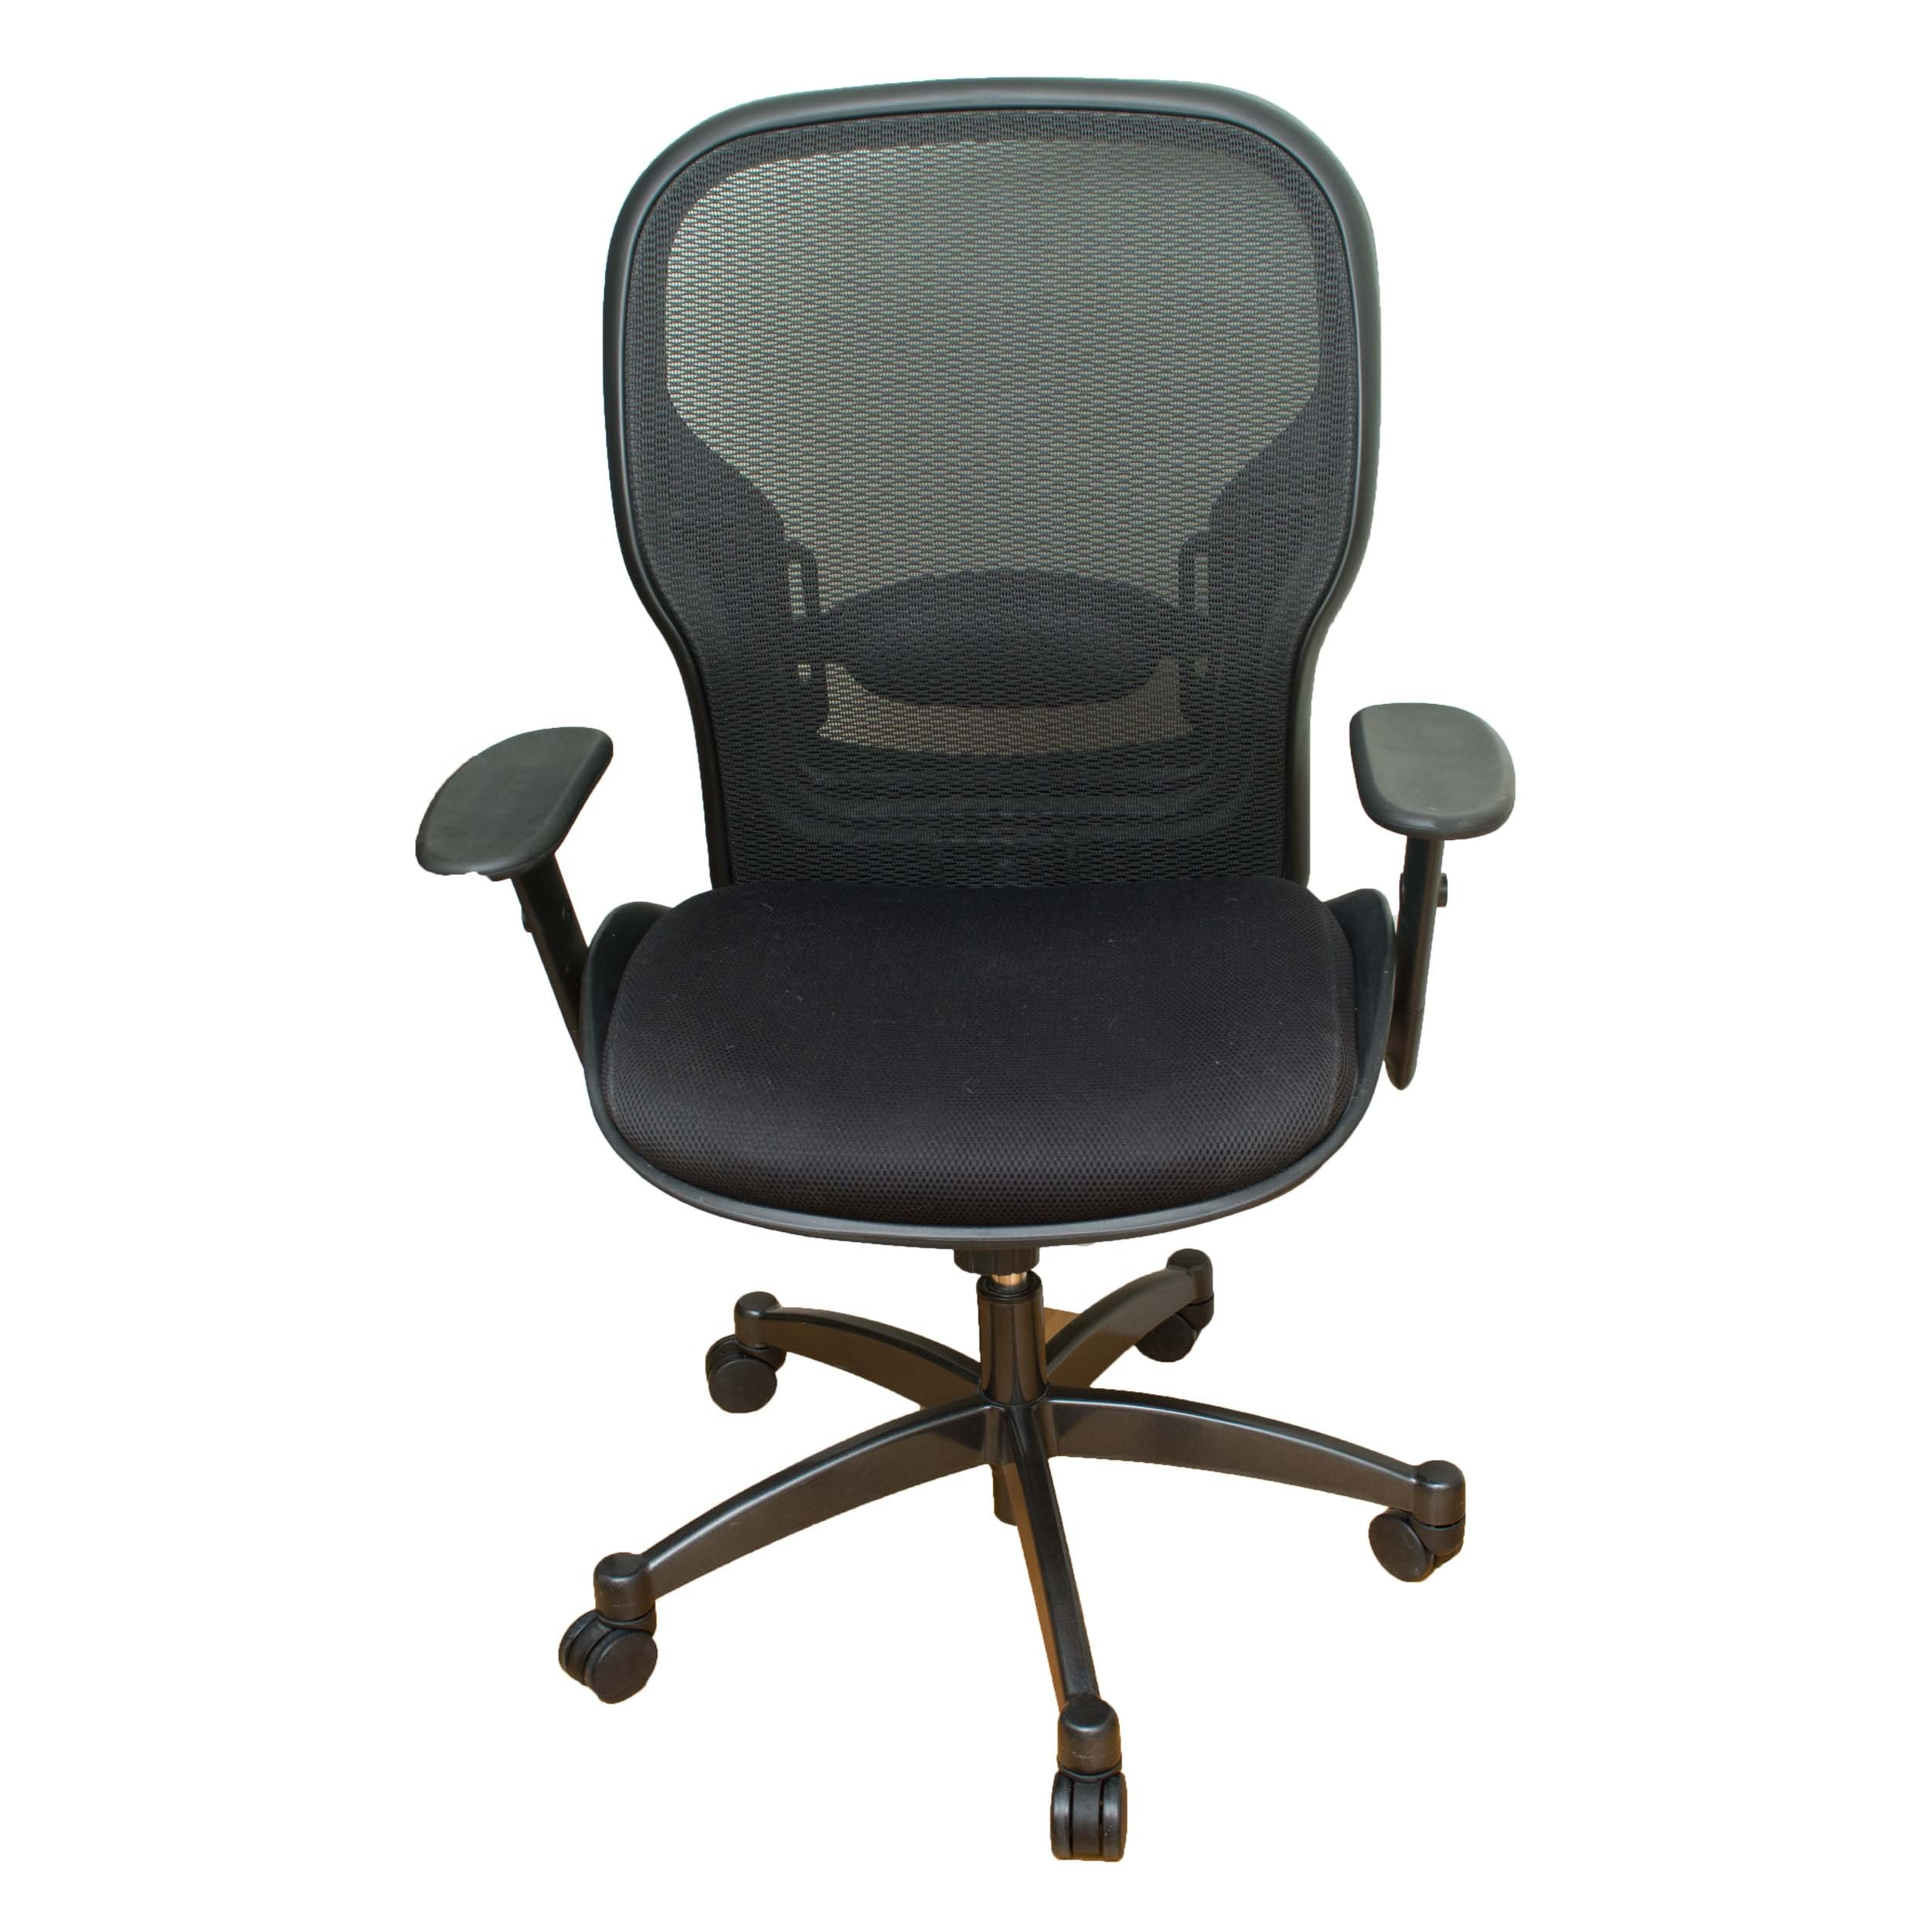 Rolling fice Chair Full Size Chairs Desk Chairs Awesome